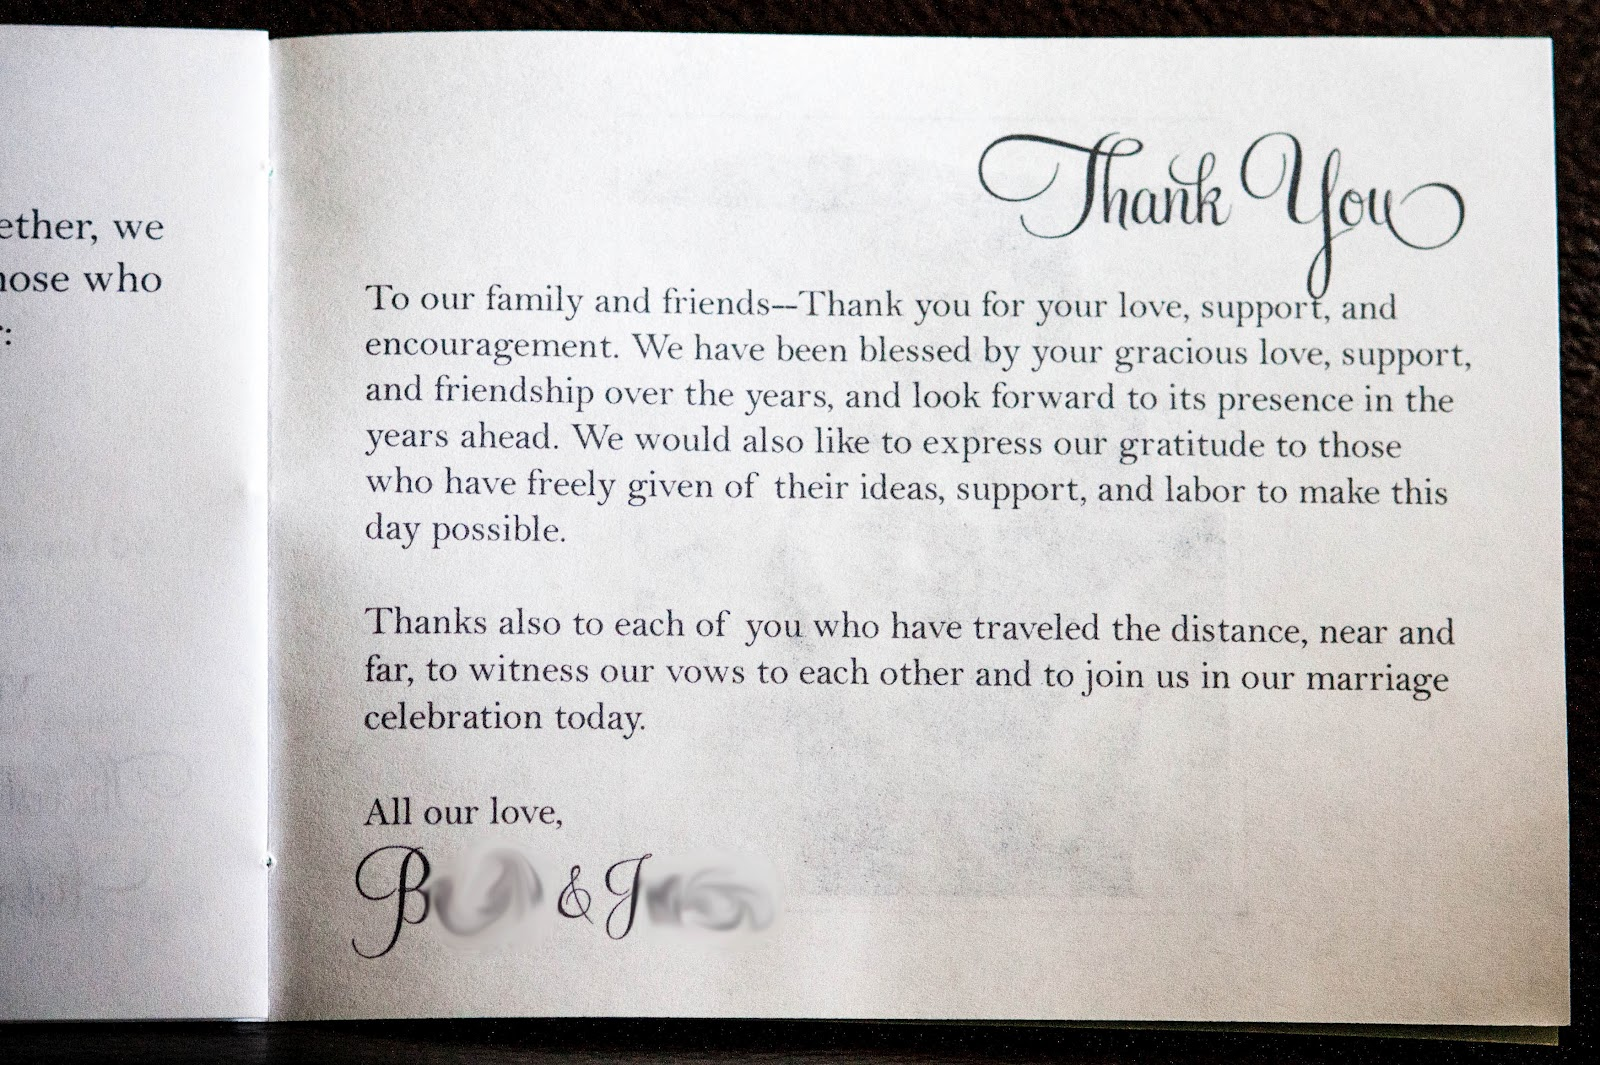 Acknowledgement letter for birthday wishes 28 images 18th acknowledgement letter for birthday wishes memorial day thank you quotes happy memorial day 2014 kristyandbryce Choice Image